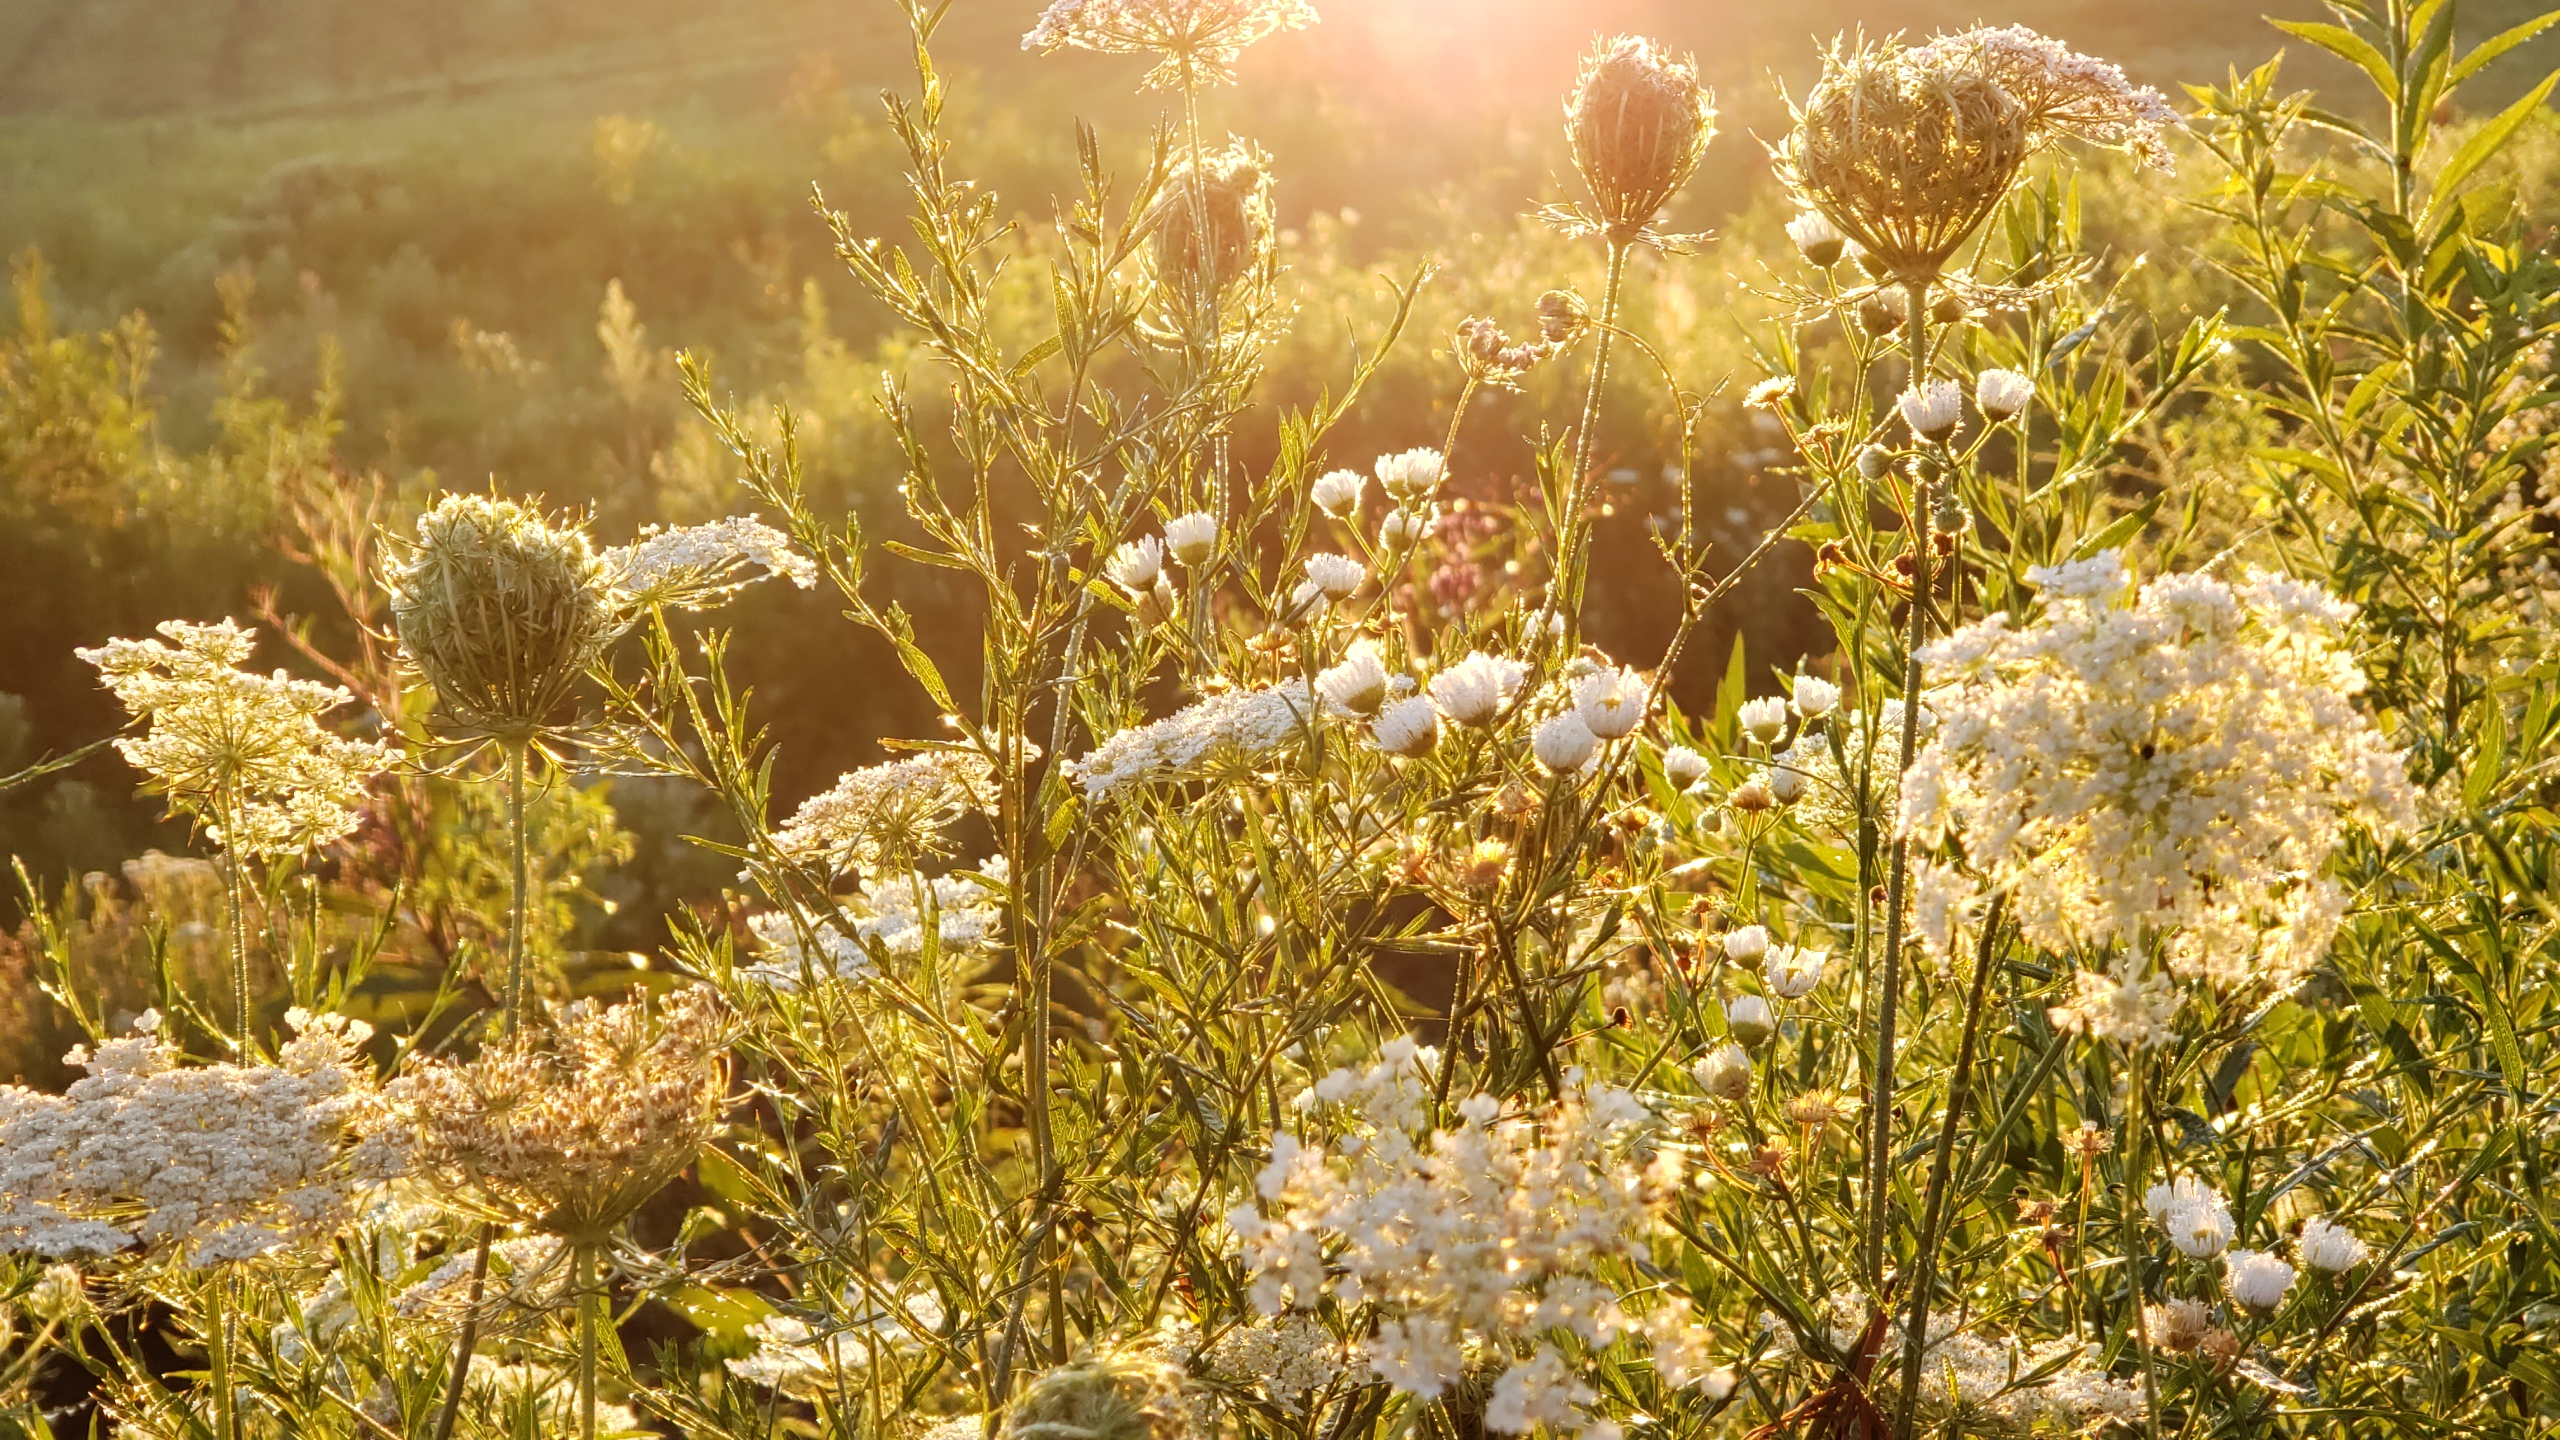 Queen Anne's lace in a bright morning sun